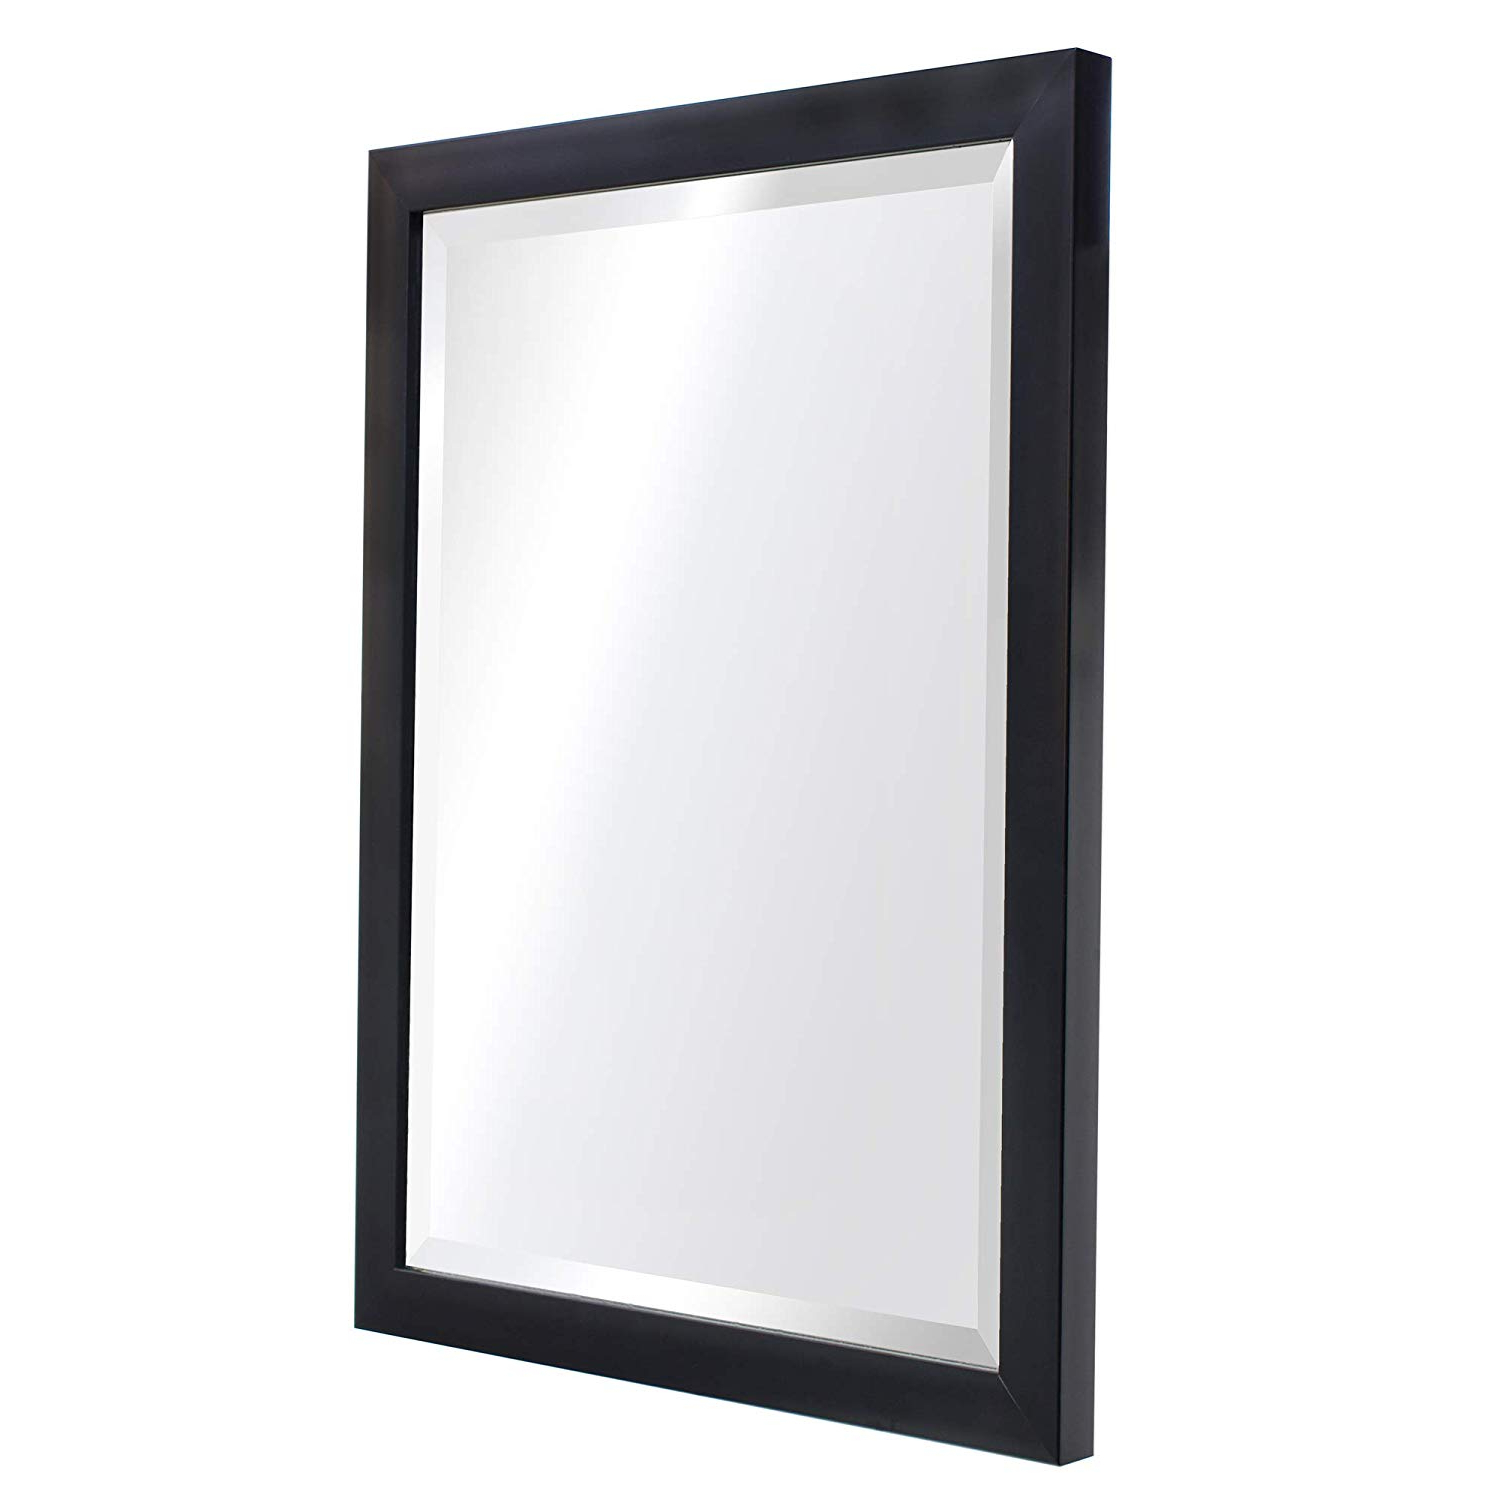 "Mirror Trend Clean Modern Black Frame Wall Mirror Contemporary Style Mirror For Bathroom Mirror For Living Room For Bedroom Makeup Mirror (16"" X 20"") With Regard To Most Up To Date Contemporary Black Wall Mirrors (View 5 of 20)"